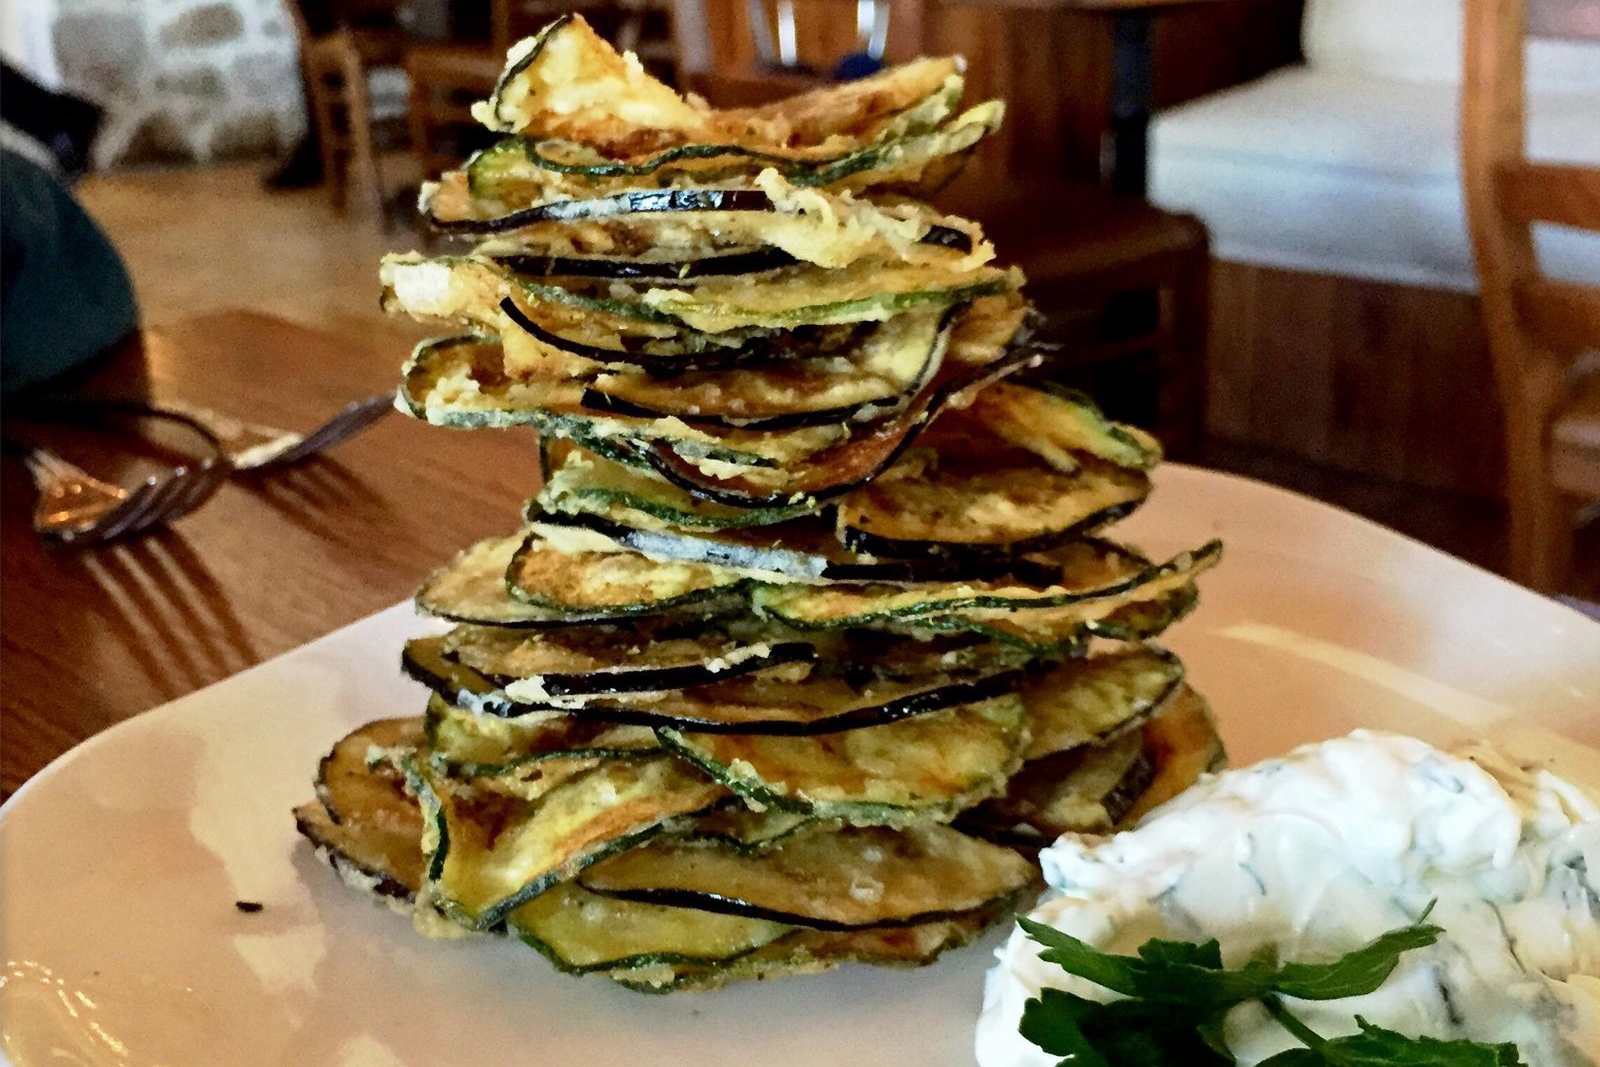 Estia chips brings a towering stack fried zucchini and eggplant rounds. (CRAIG LABAN / Staff)